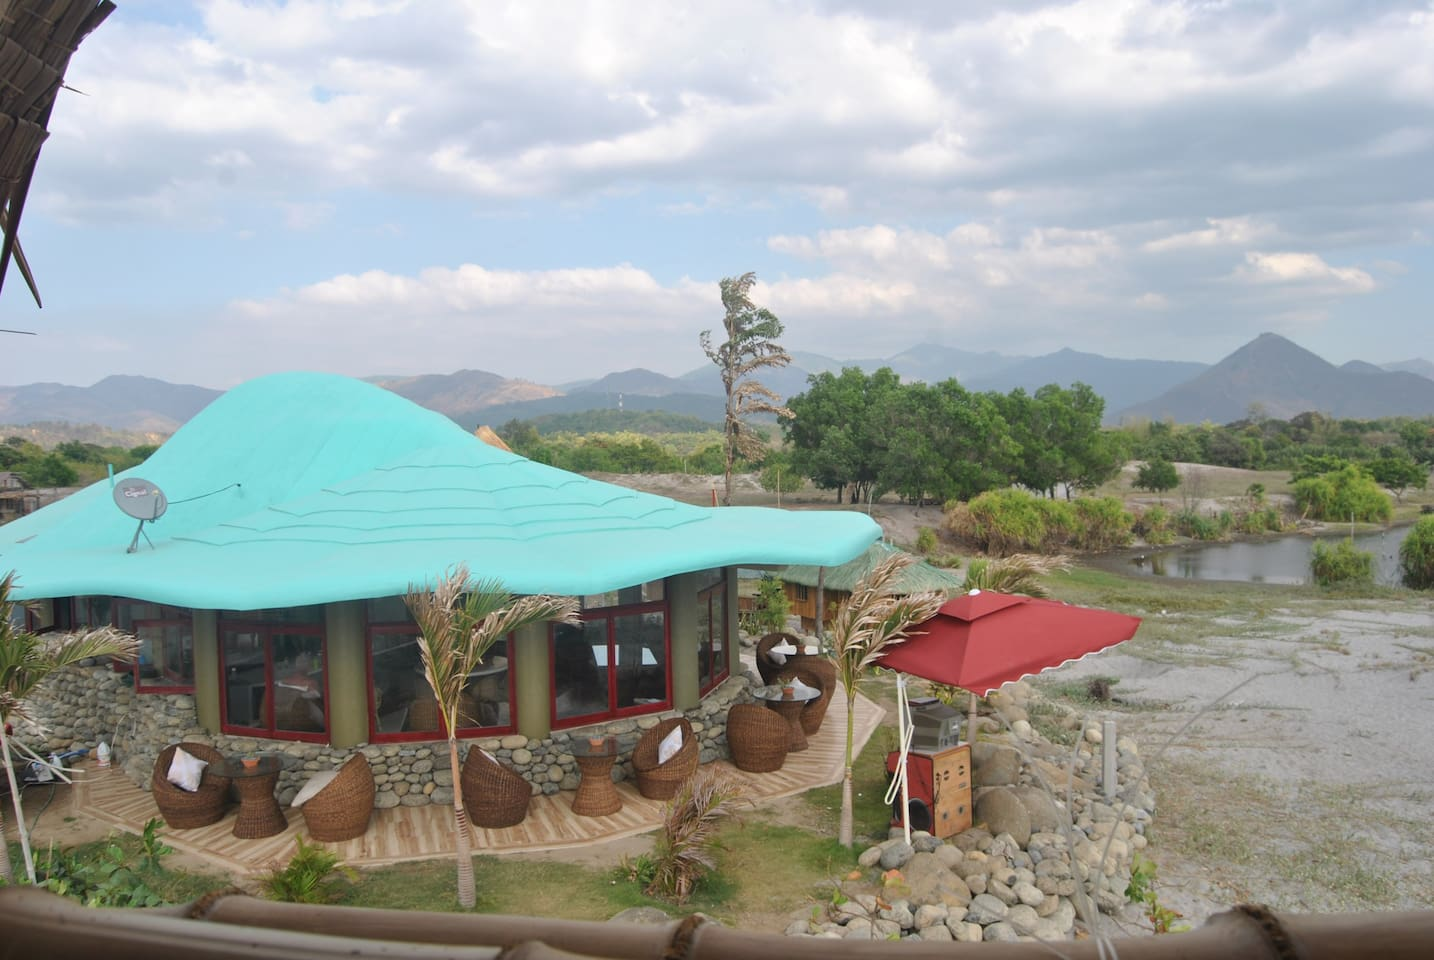 Owner's Residence and Outdoor Restaurant Dining